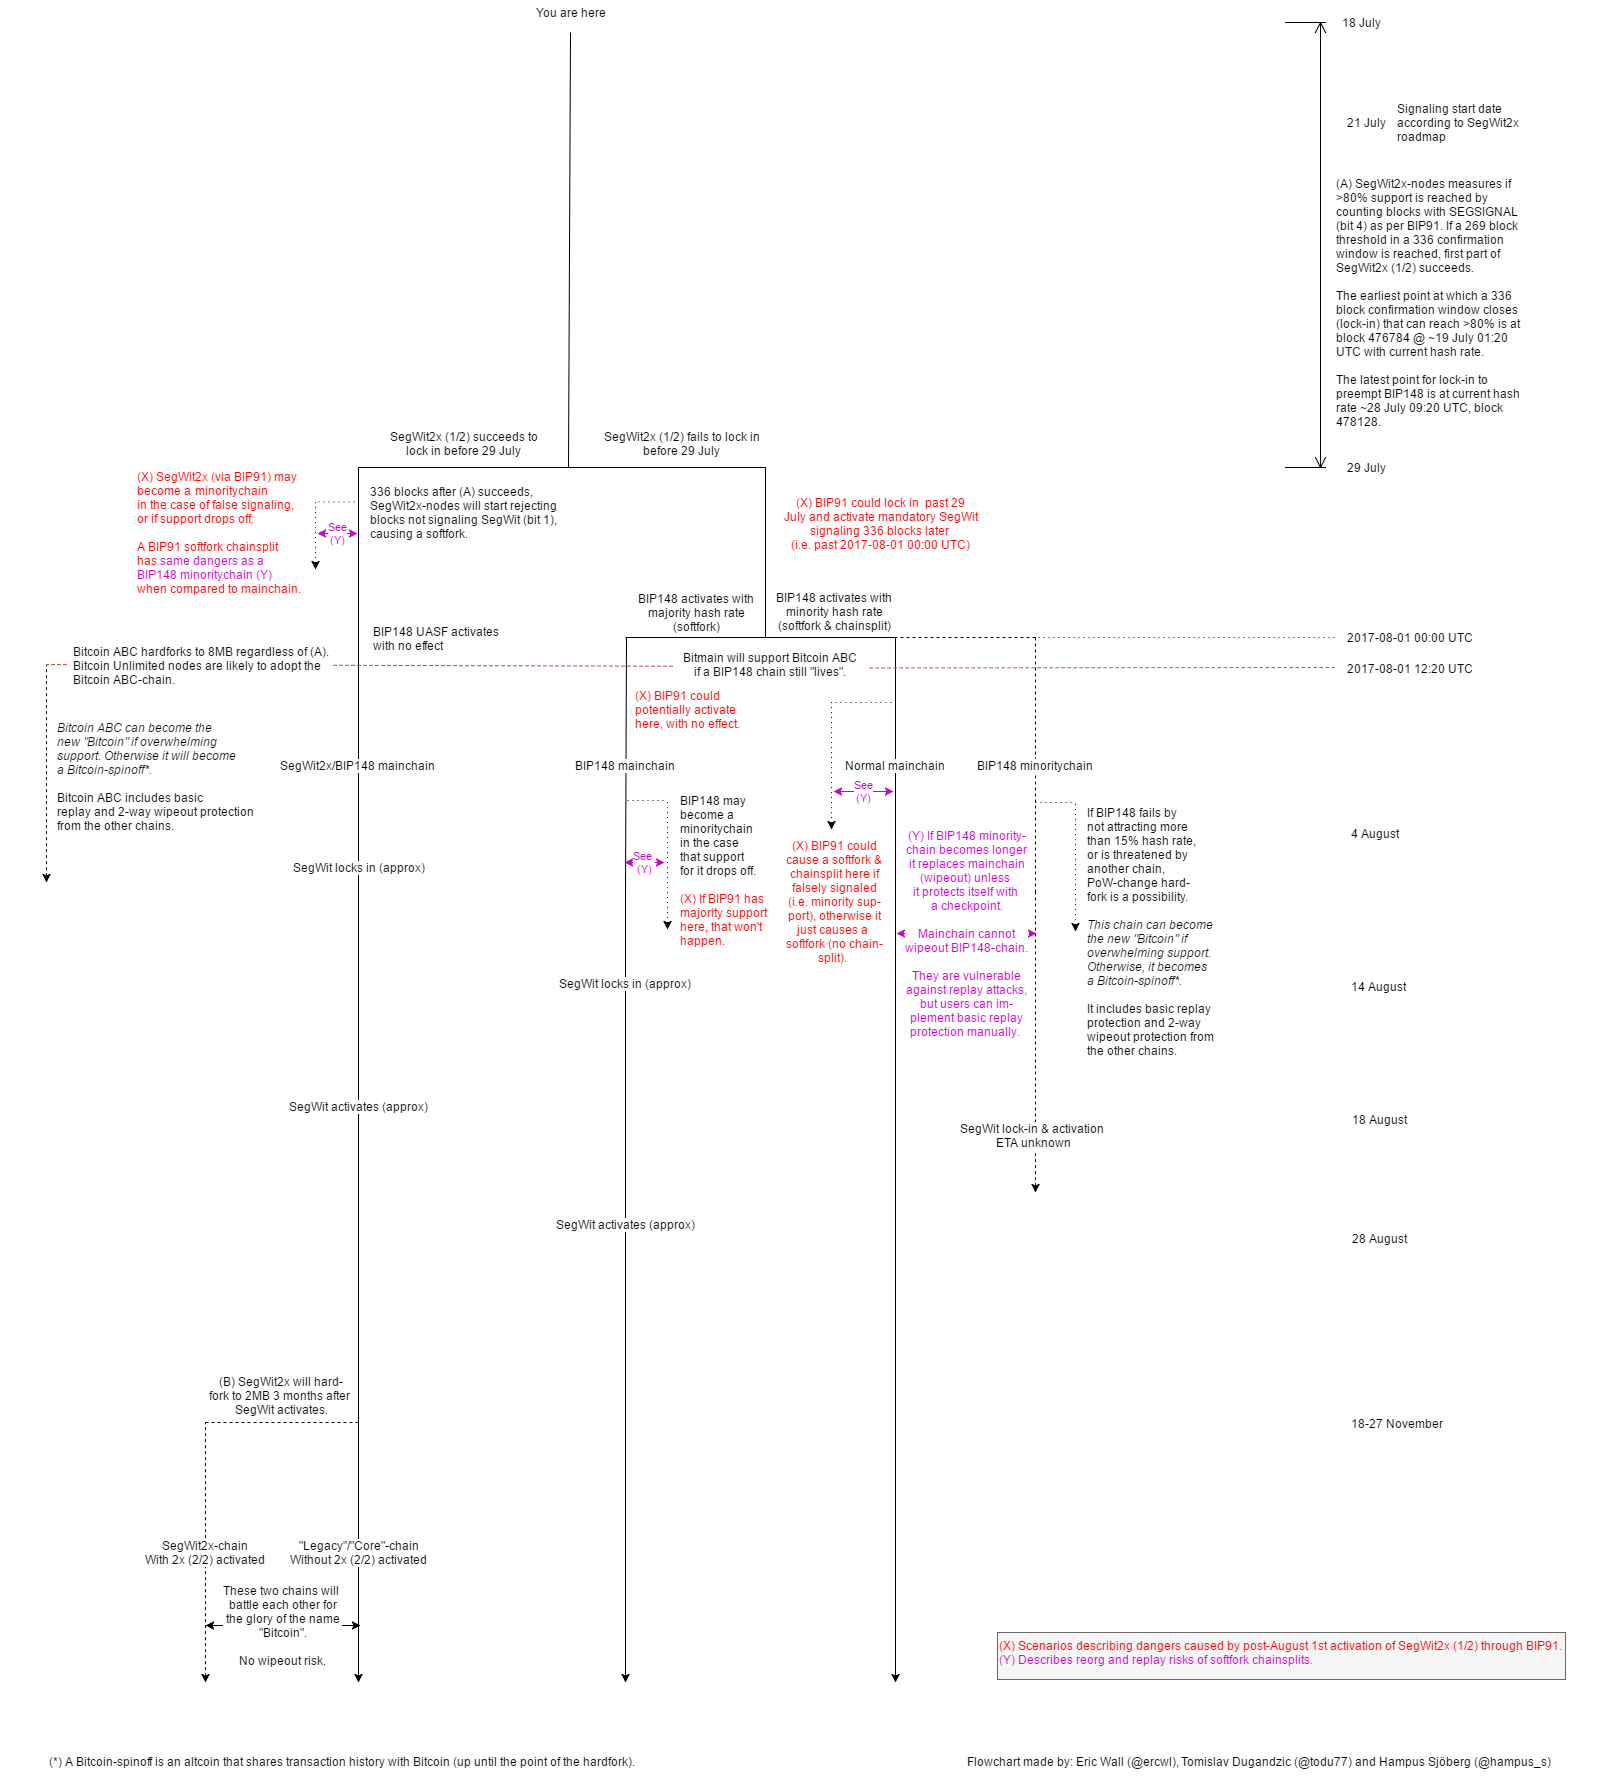 The Great Bitcoin Scaling Debate A Timeline Hacker Noon E Cigarette Block Diagram See Is Easy Image By Eric Wall